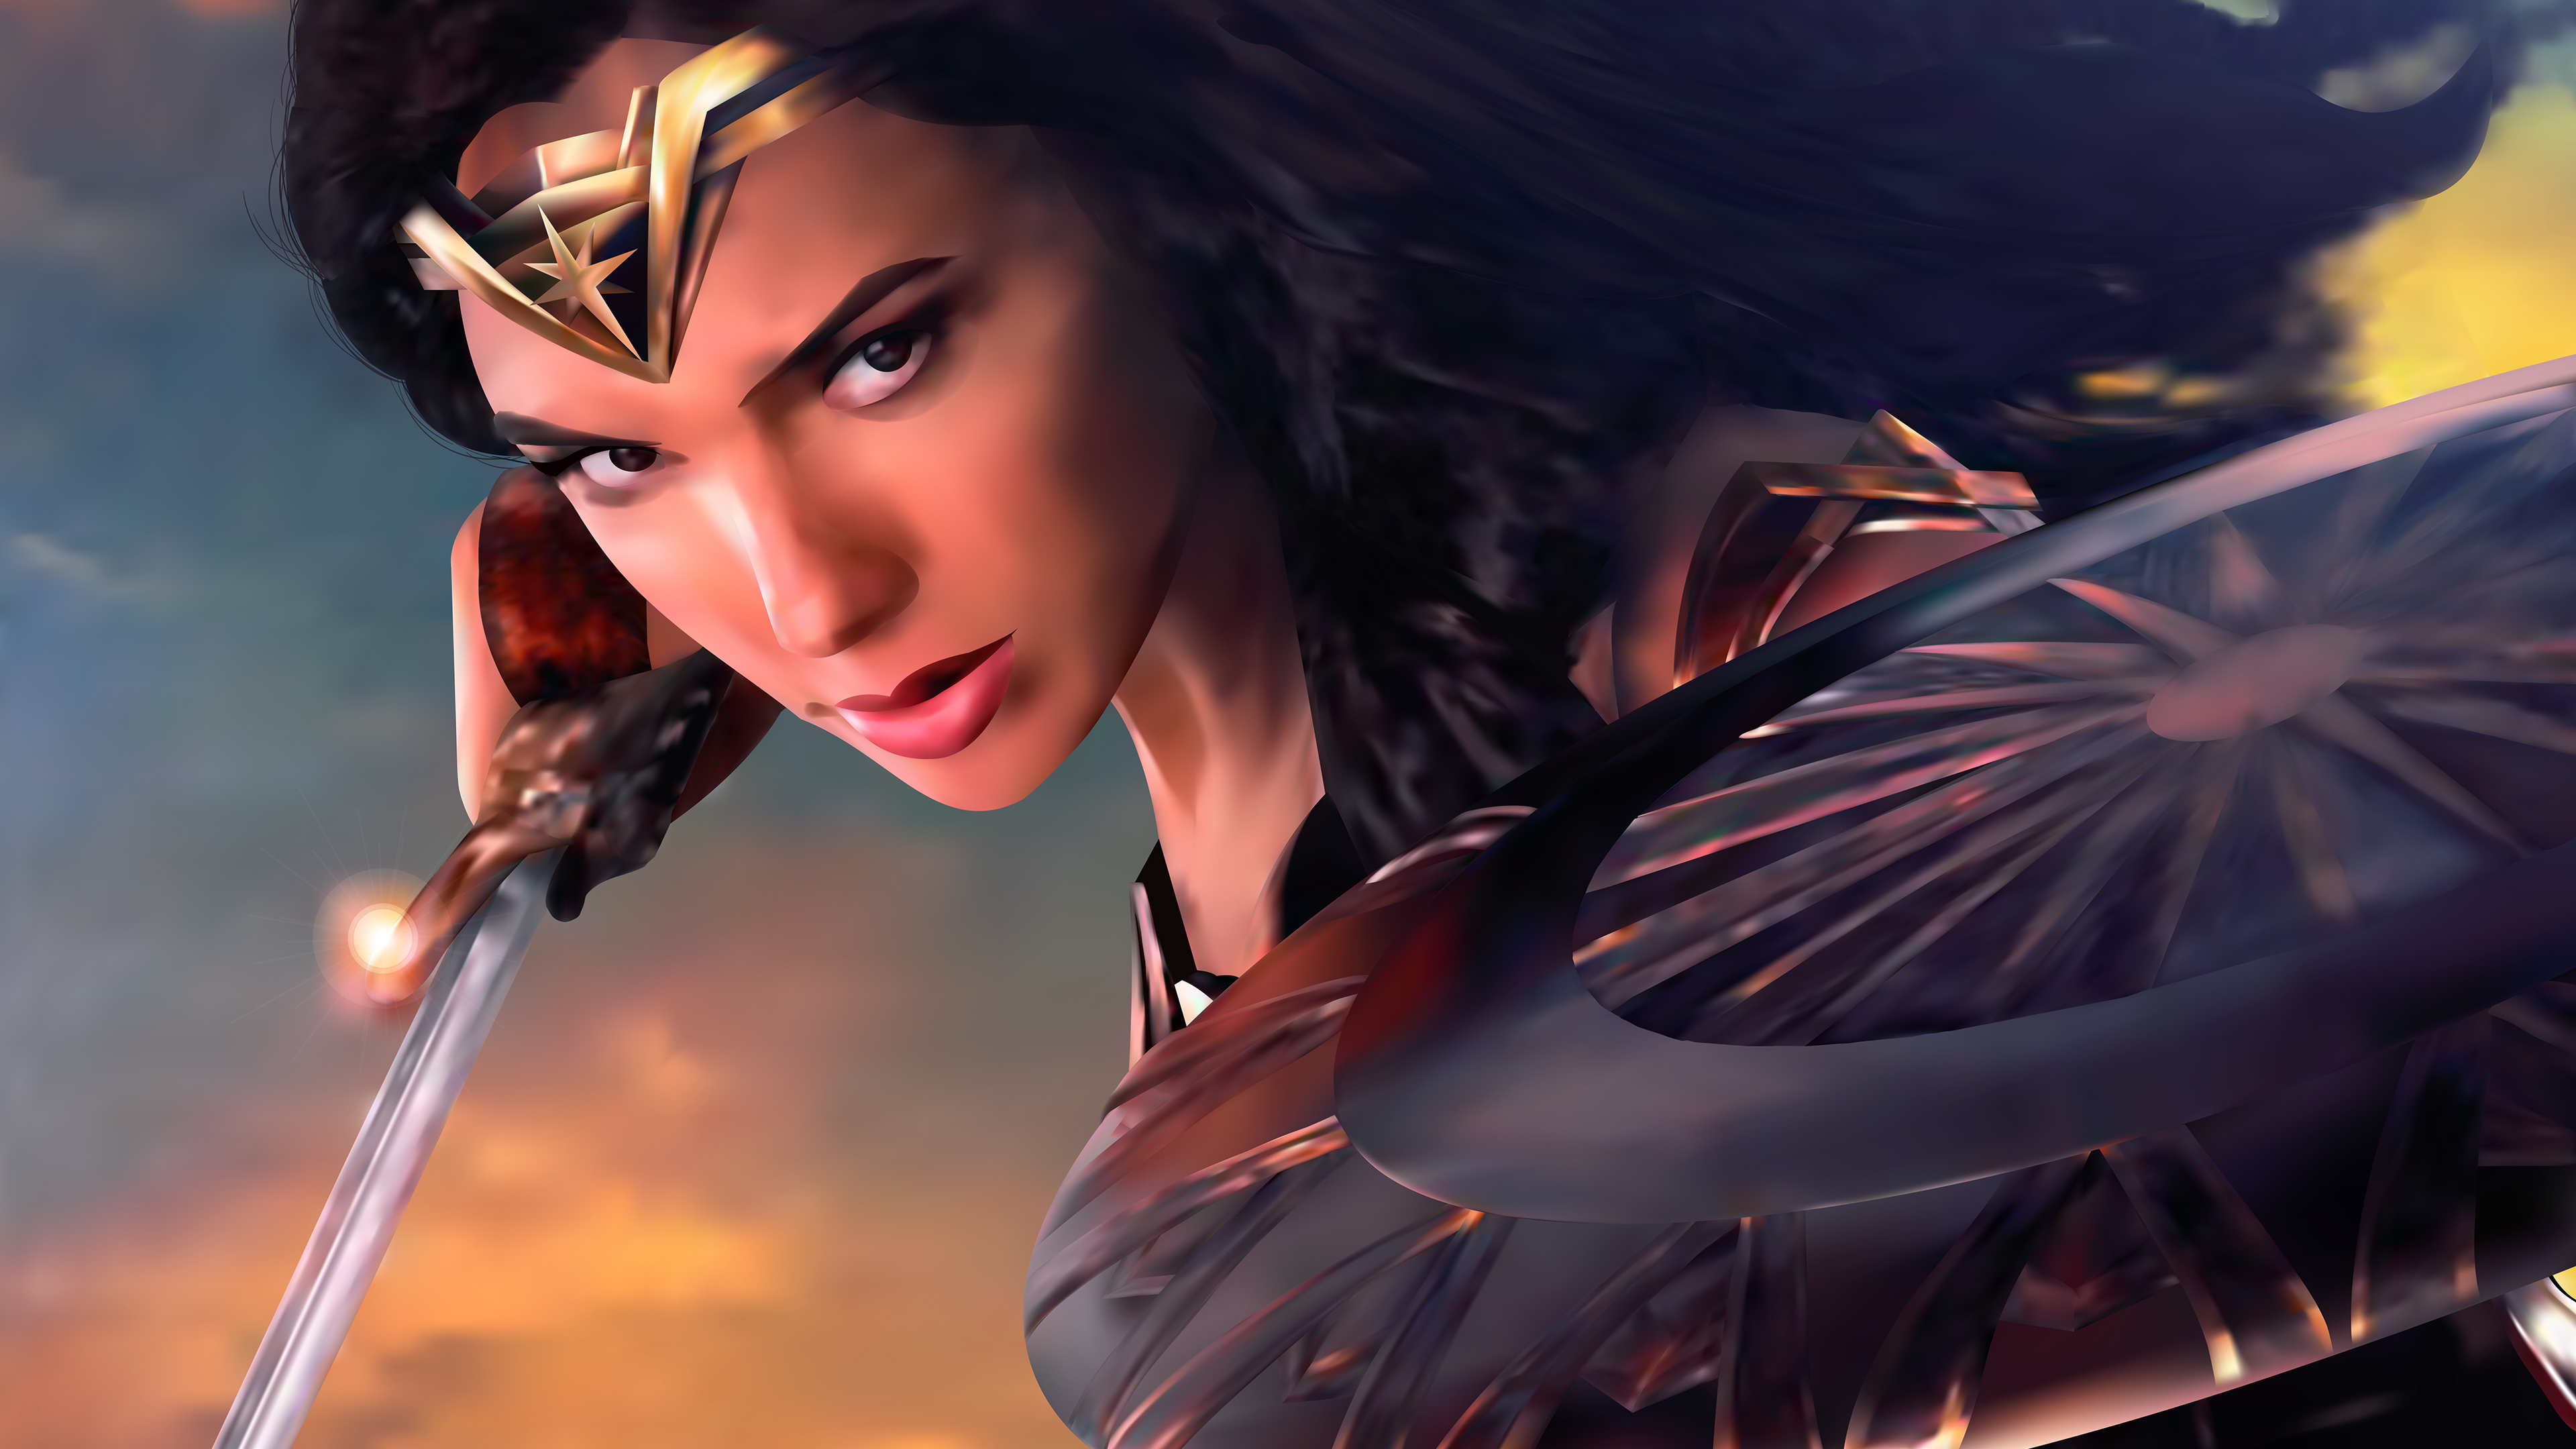 wonder woman digital artwork 4k new 1547506406 - Wonder Woman Digital Artwork 4k new - wonder woman wallpapers, superheroes wallpapers, hd-wallpapers, digital art wallpapers, behance wallpapers, artwork wallpapers, artist wallpapers, 4k-wallpapers